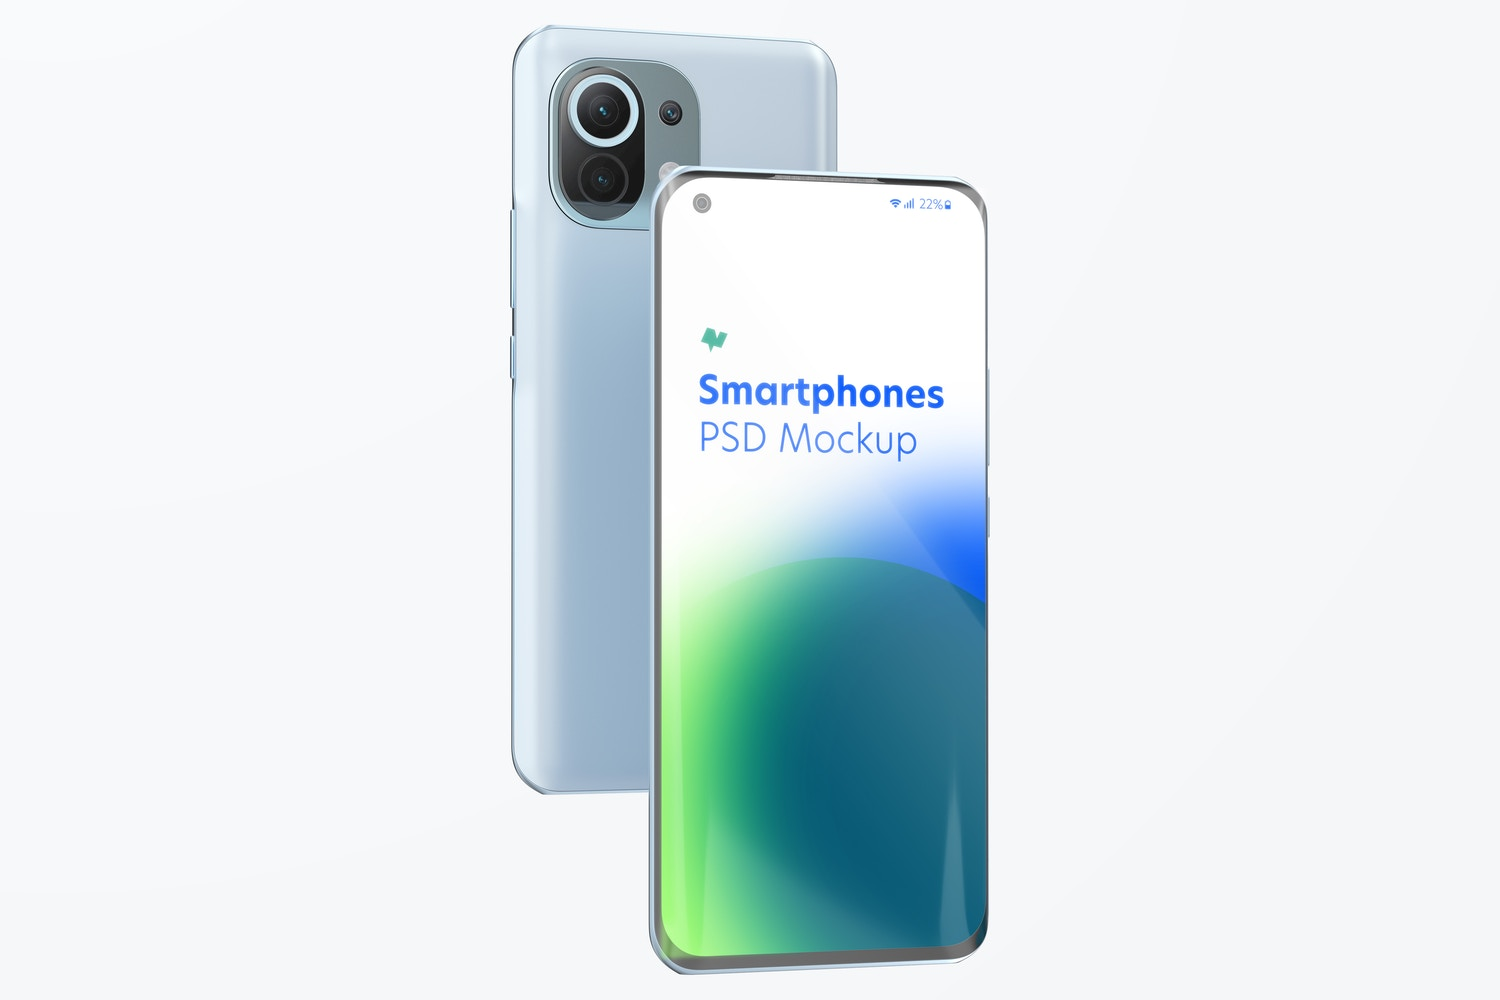 Xiaomi Smartphones Mockup, Front and Back View